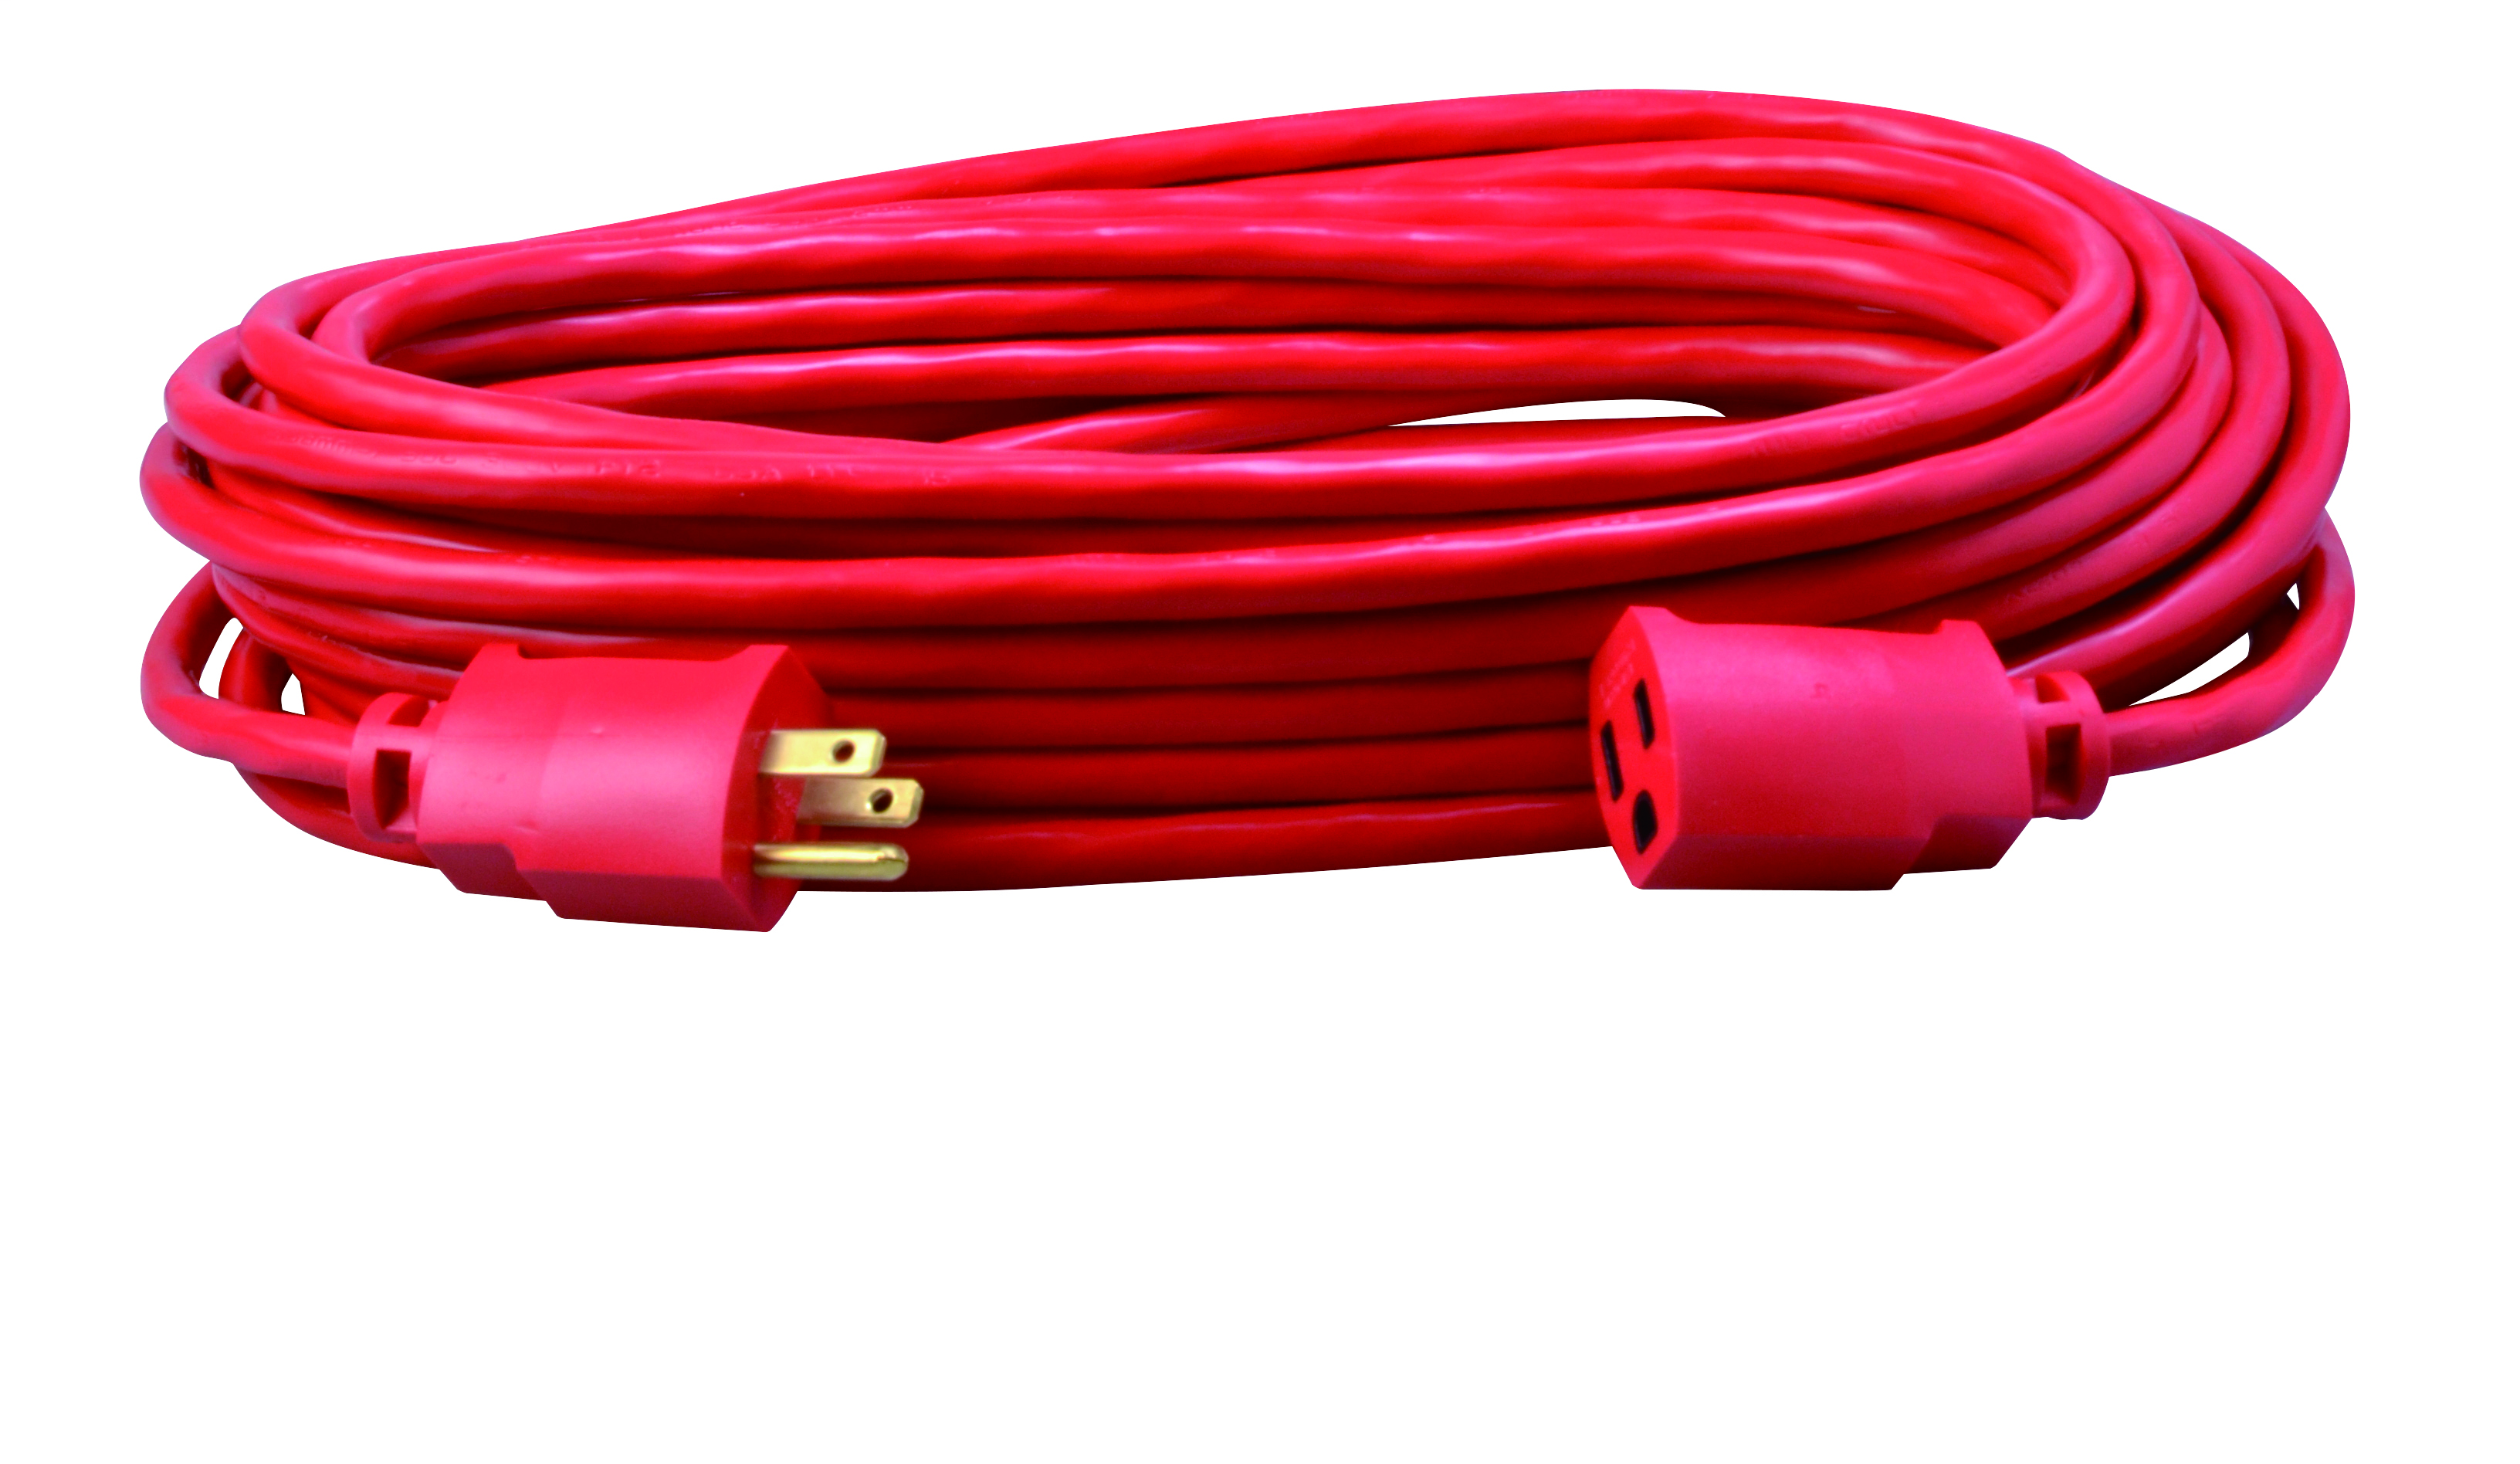 COLEMAN 2408SW8804 14/3 50FT SJTW RED EXTENSION CORD